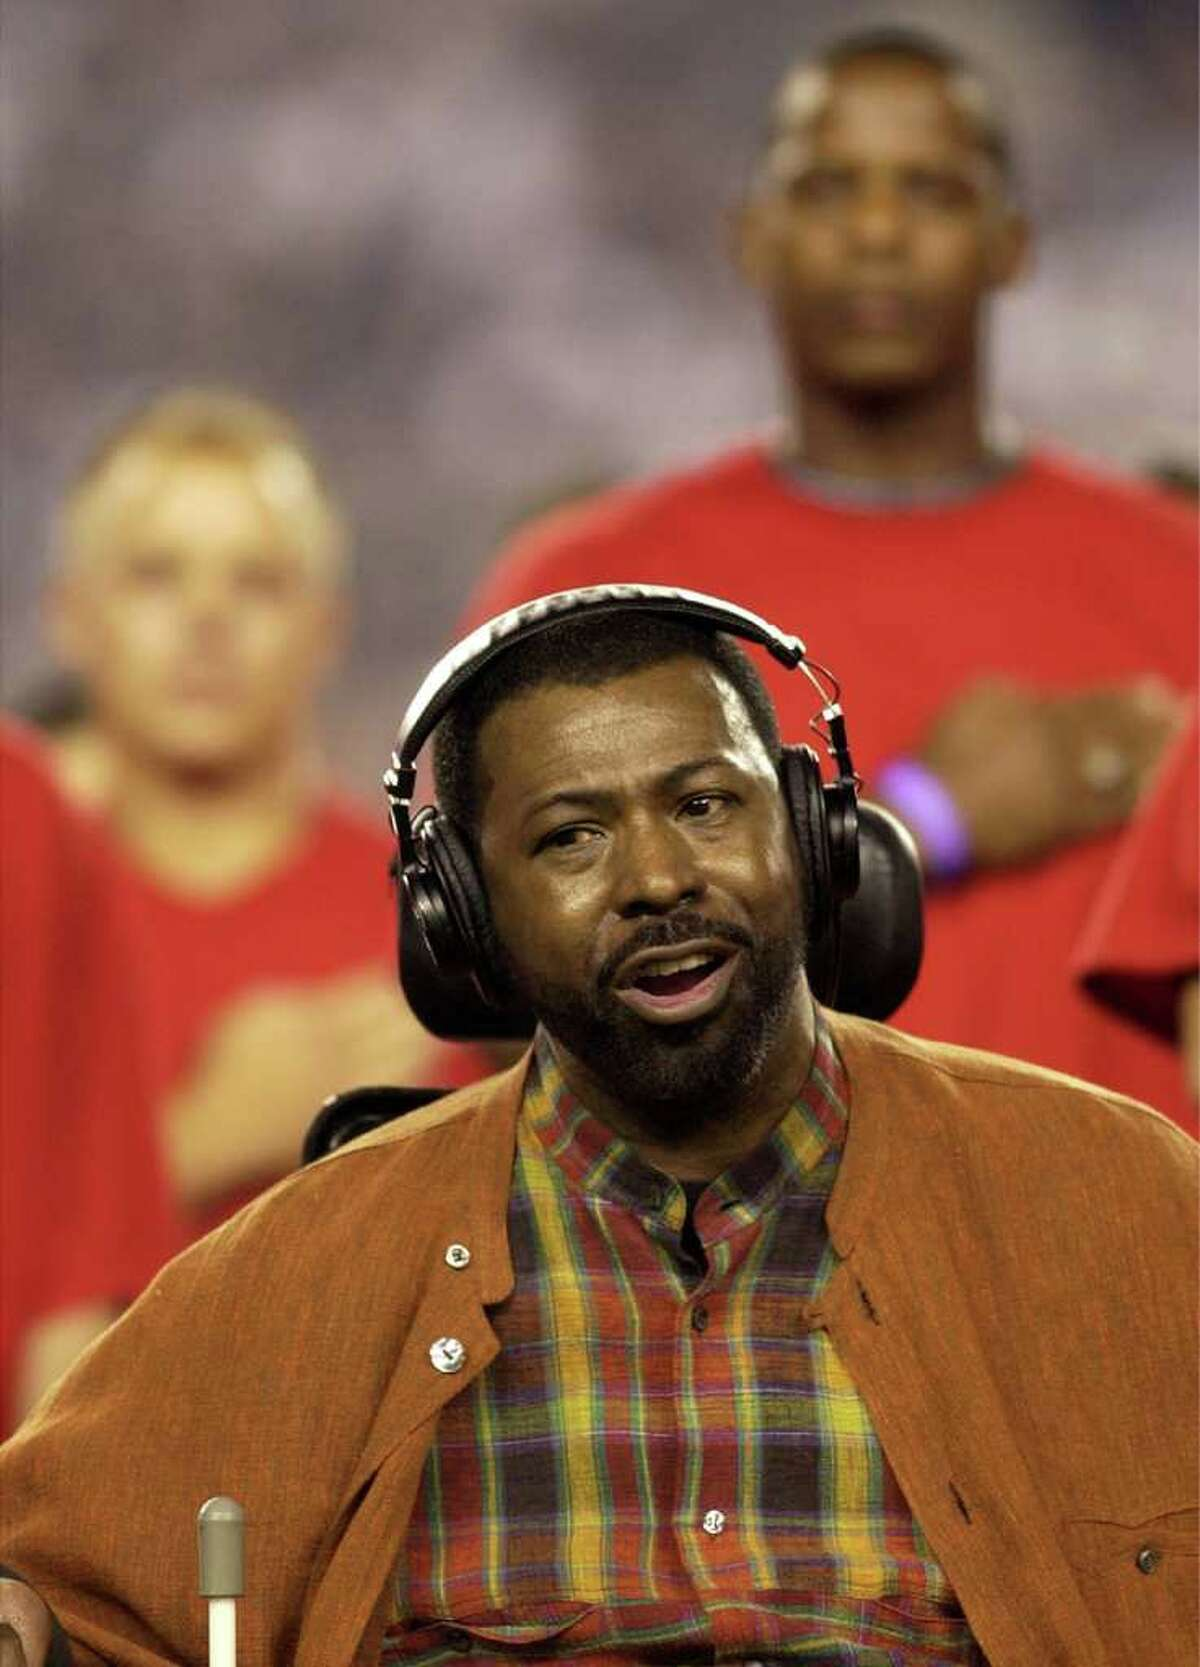 Singer Teddy Pendergrass died January 13 at 59.